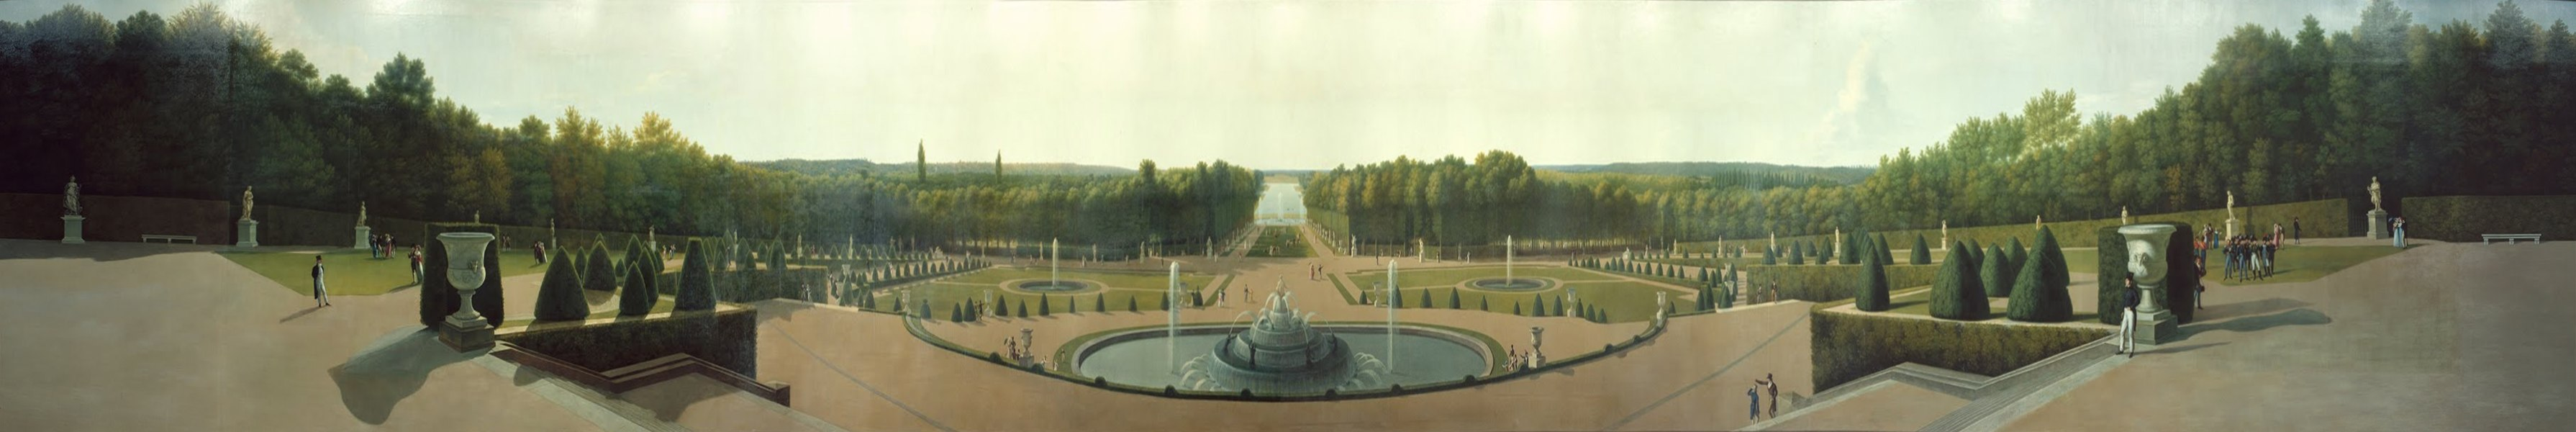 palace and gardens of versailles - image 1